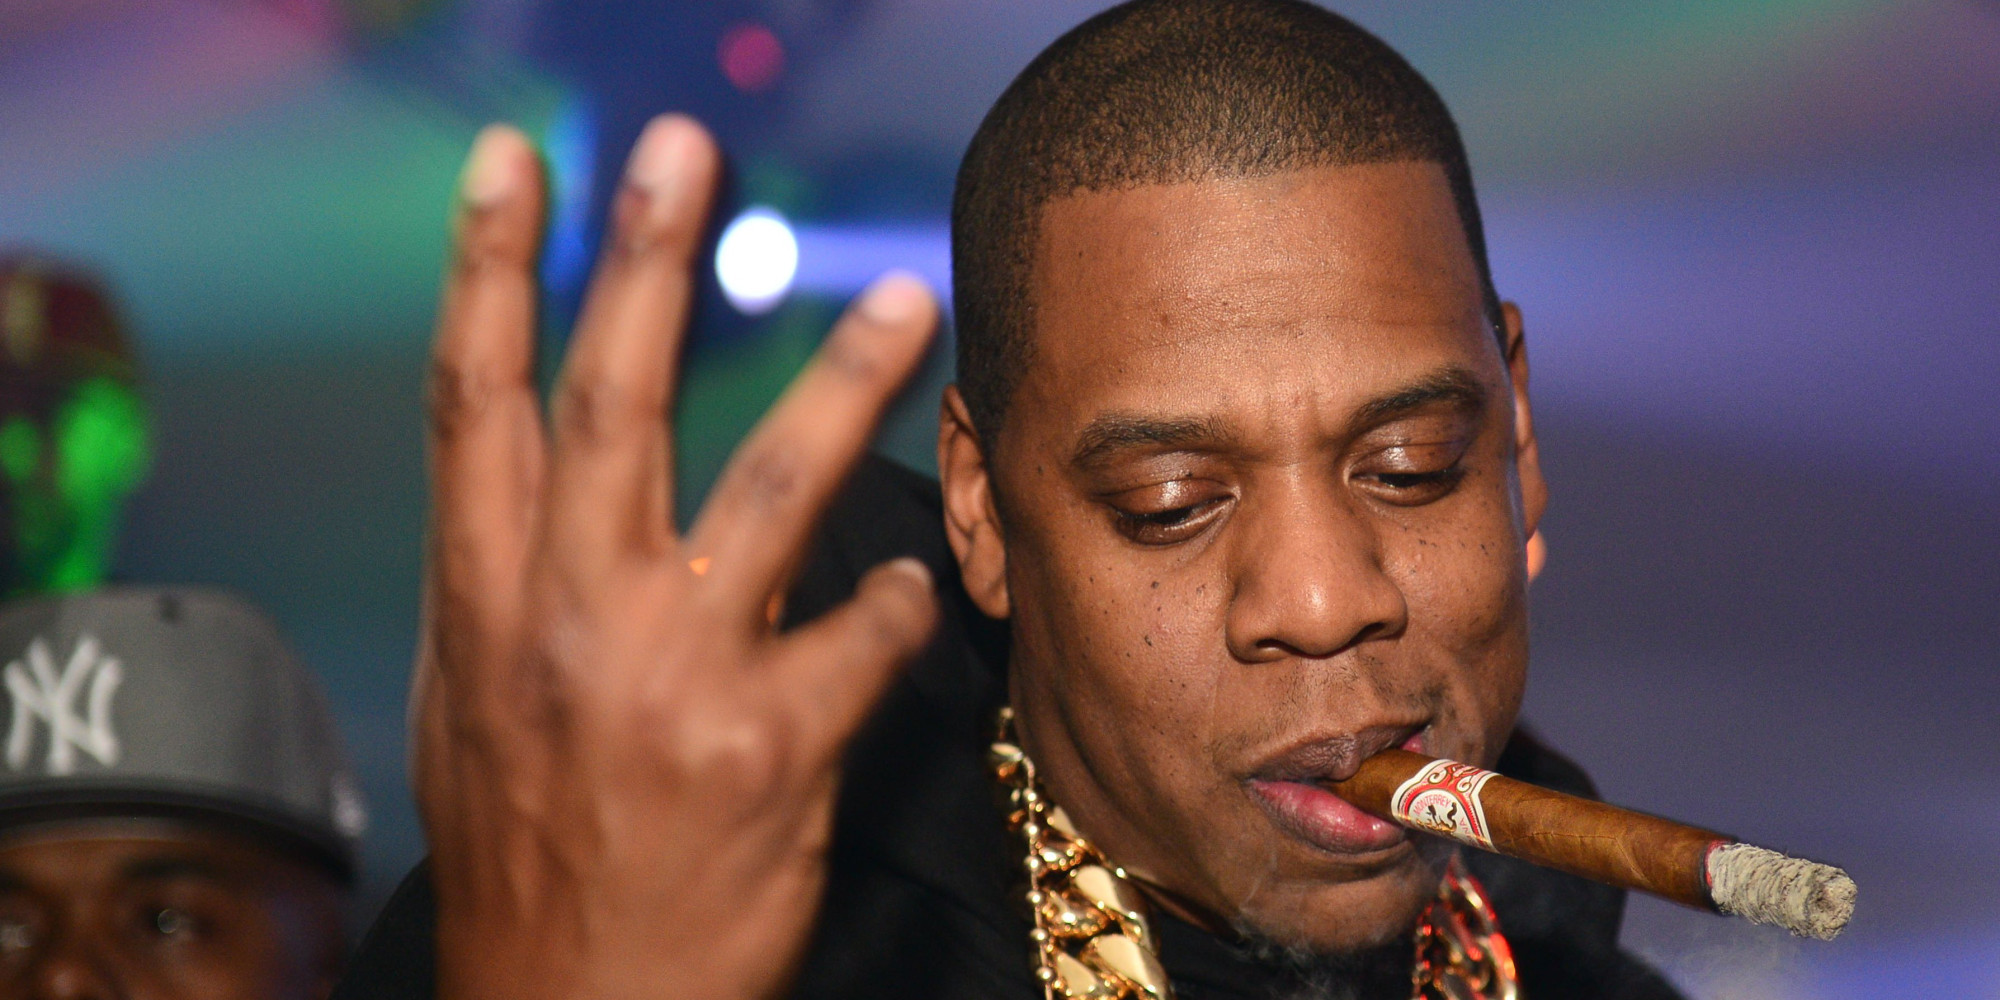 """Jay-Z, about Kanye West: """"You know you went overboard"""""""